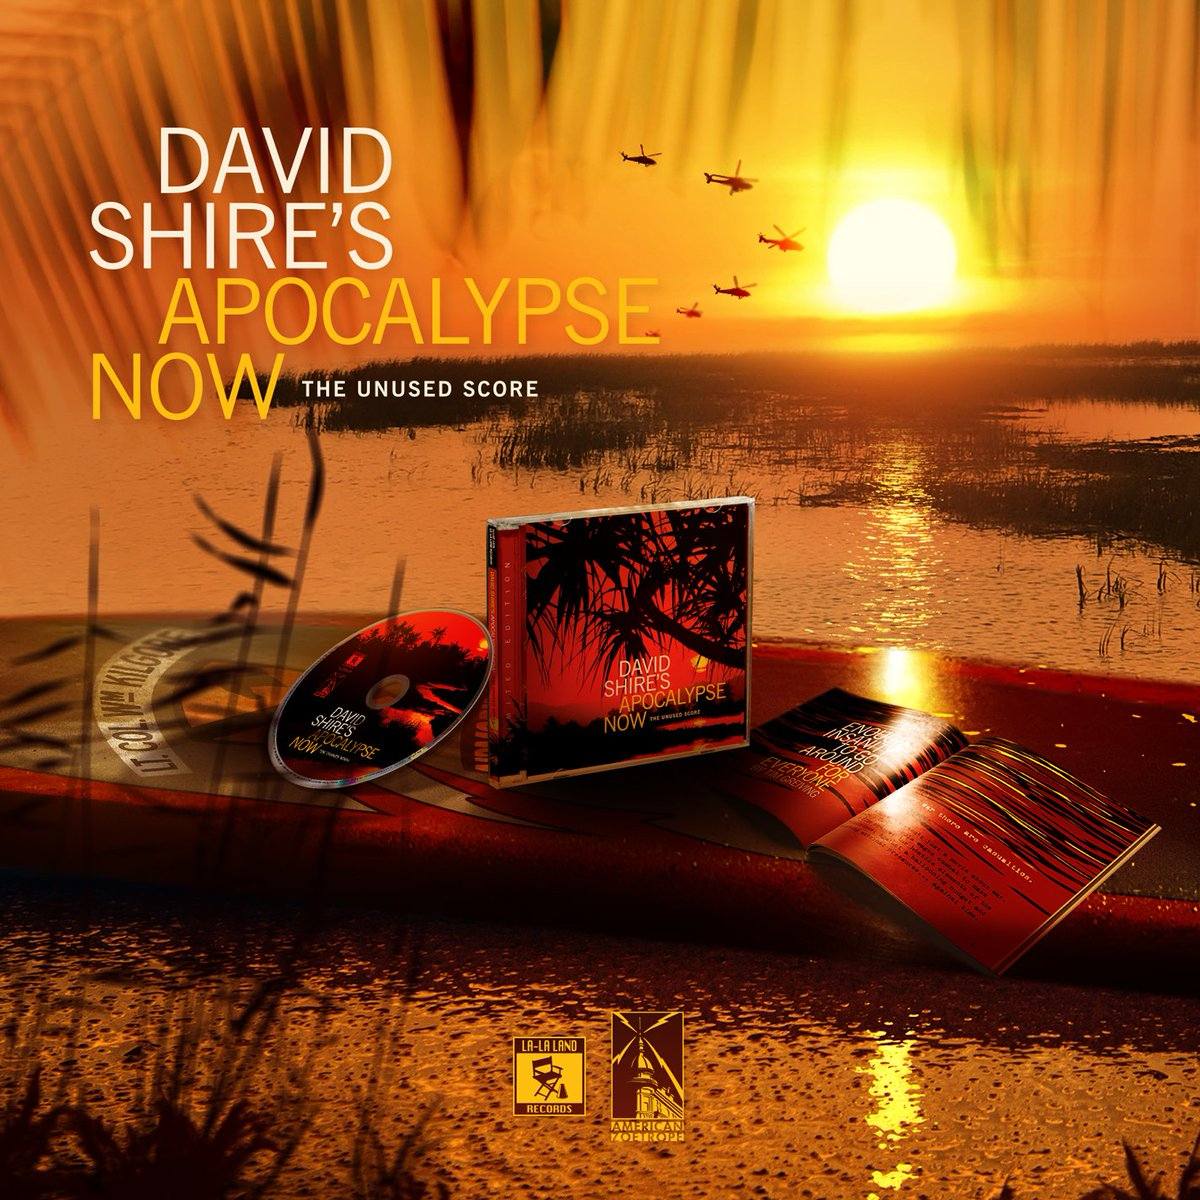 Coming 11/28 from  http:// lalalandrecords.com  &nbsp;   – limited edition CD #soundtrack of #DavidShire's #ApocalypseNow – THE UNUSED SCORE. #film #70s<br>http://pic.twitter.com/AvTSNlrjkn